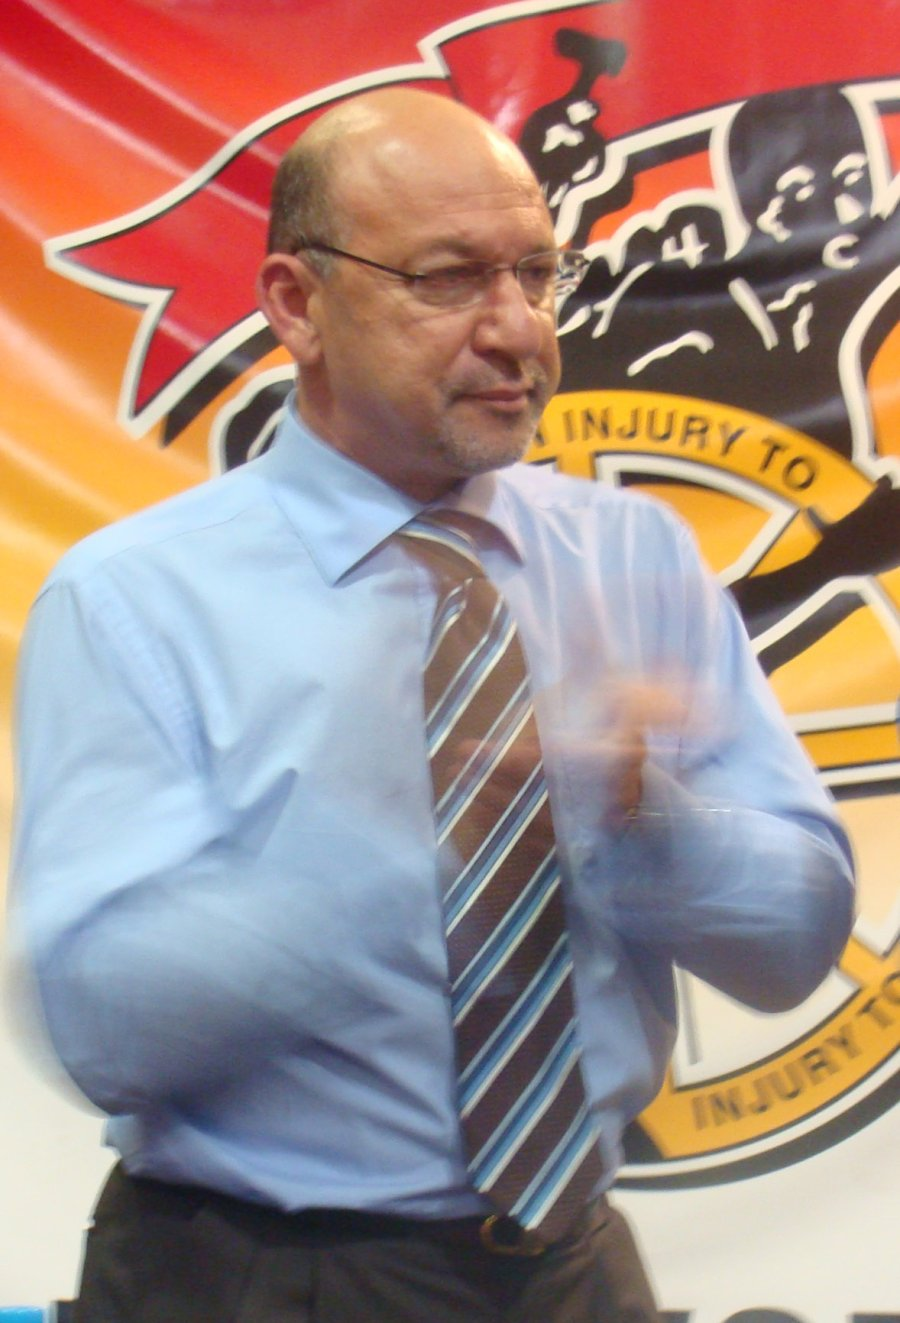 Finance Minister Trevor Manuel addressed several hundred workers at the Good Hope Centre in Cape Town on Wednesday. The event marked the launch of Cosatu's election campaign in support of the ANC. Photo: Siyabonga Kalipa/WCN